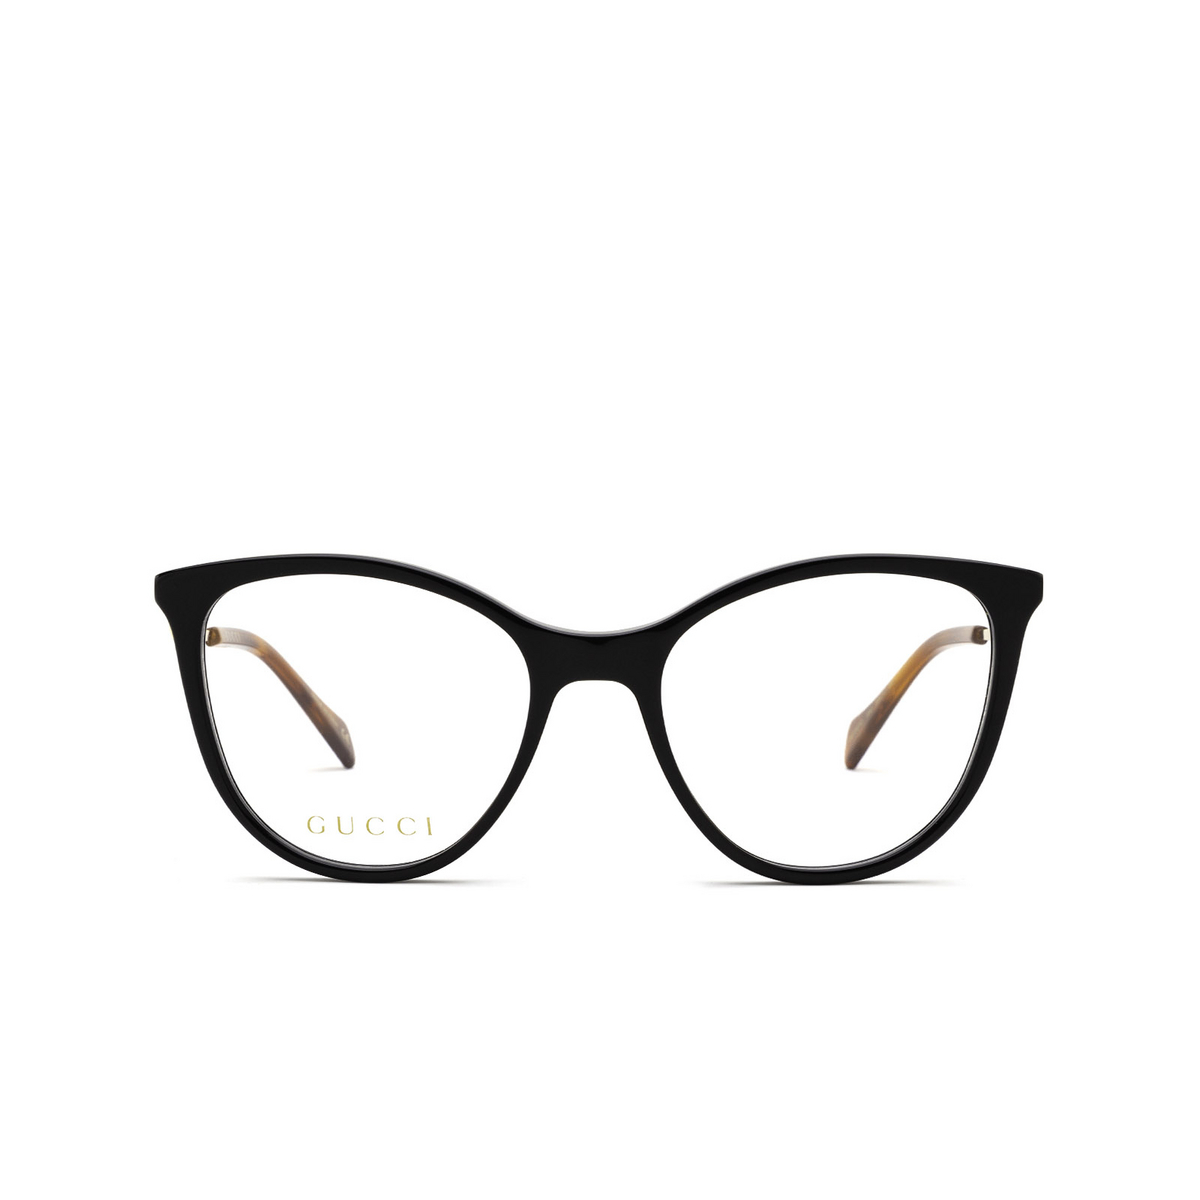 Gucci® Cat-eye Eyeglasses: GG1007O color Black 002 - front view.